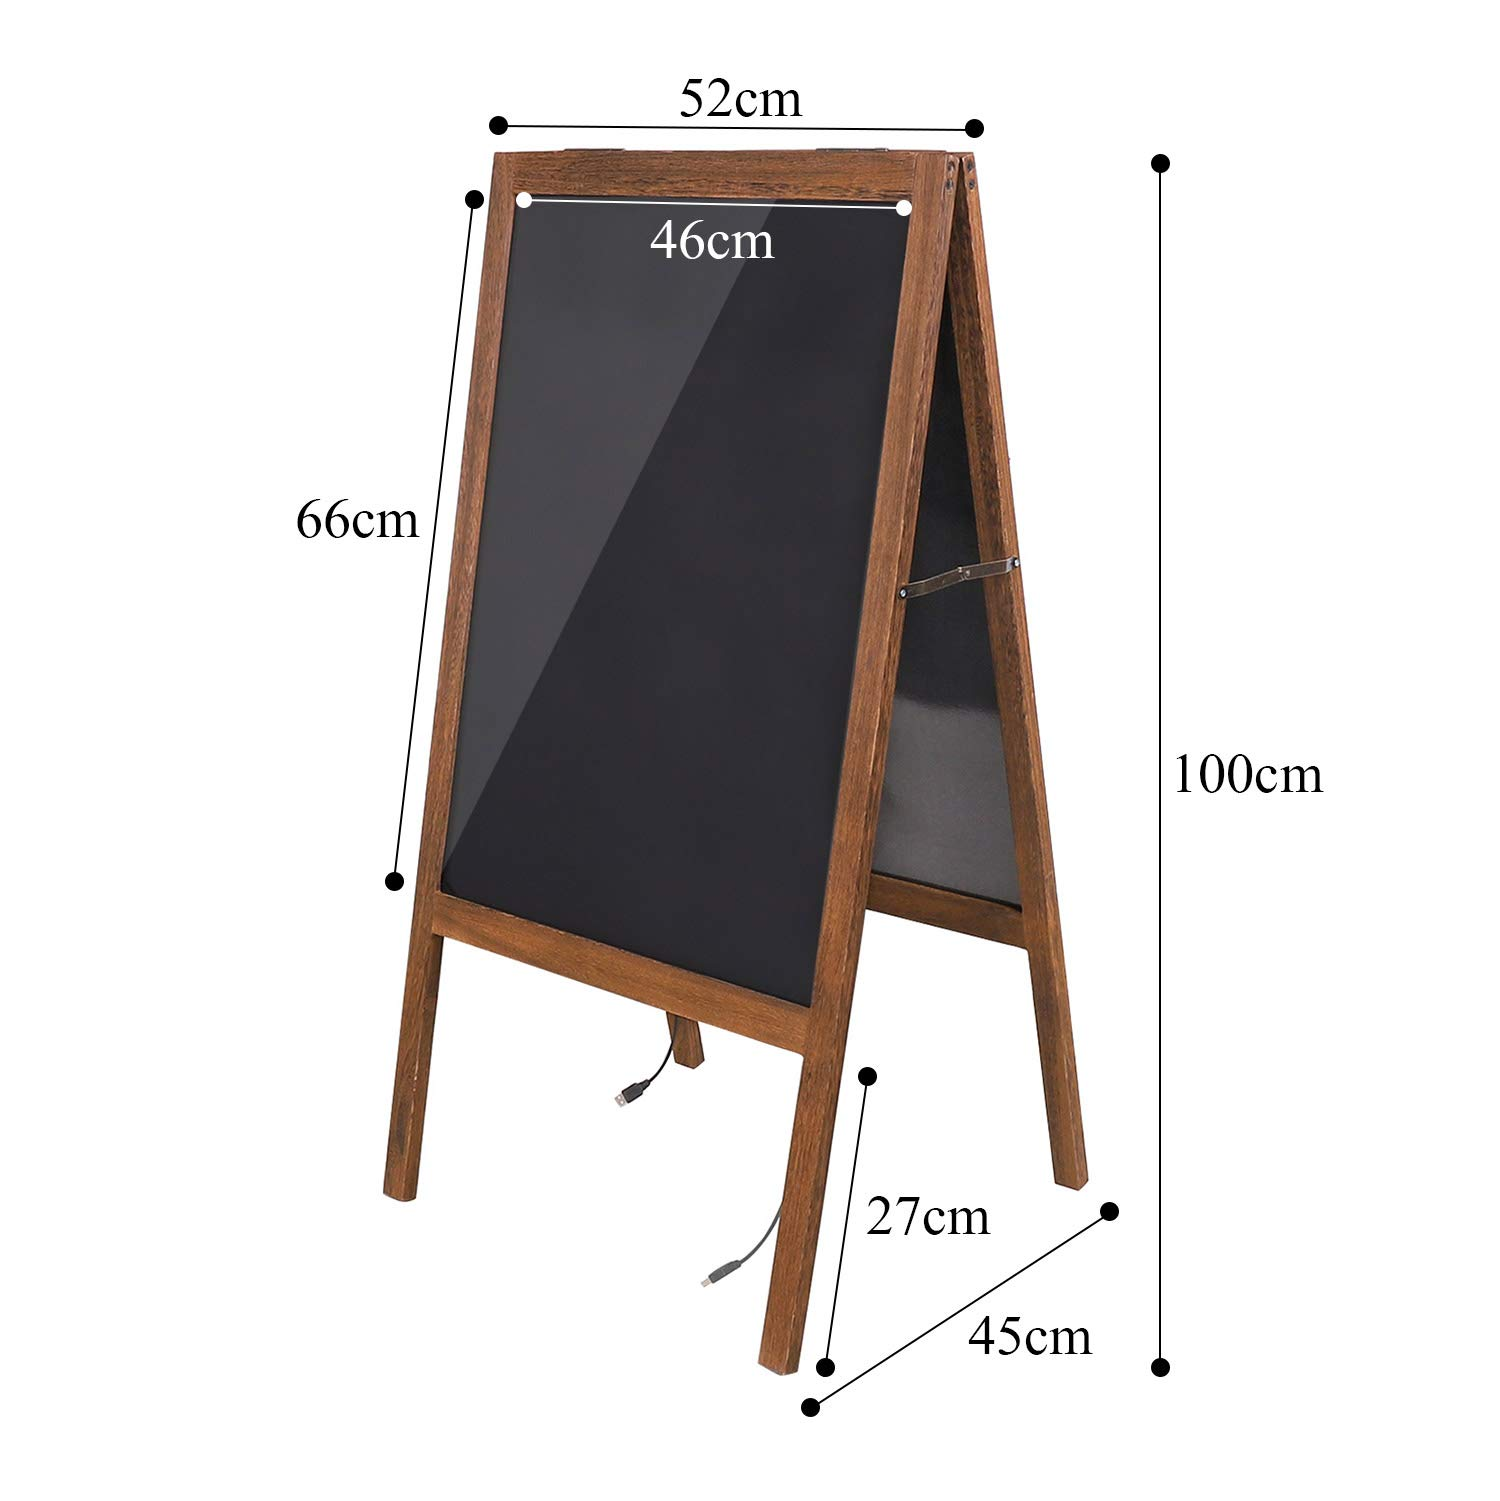 LUVODI LED Message Writing Board, 39.4'' x 20.5'' Double Sided Illuminated Erasable Neon Effect Glass Surface Restaurant Menu Sign with Stand Kid DIY Painting Chalkboard 4 Flashing Mode for Bar, Kitchen by LUVODI (Image #4)